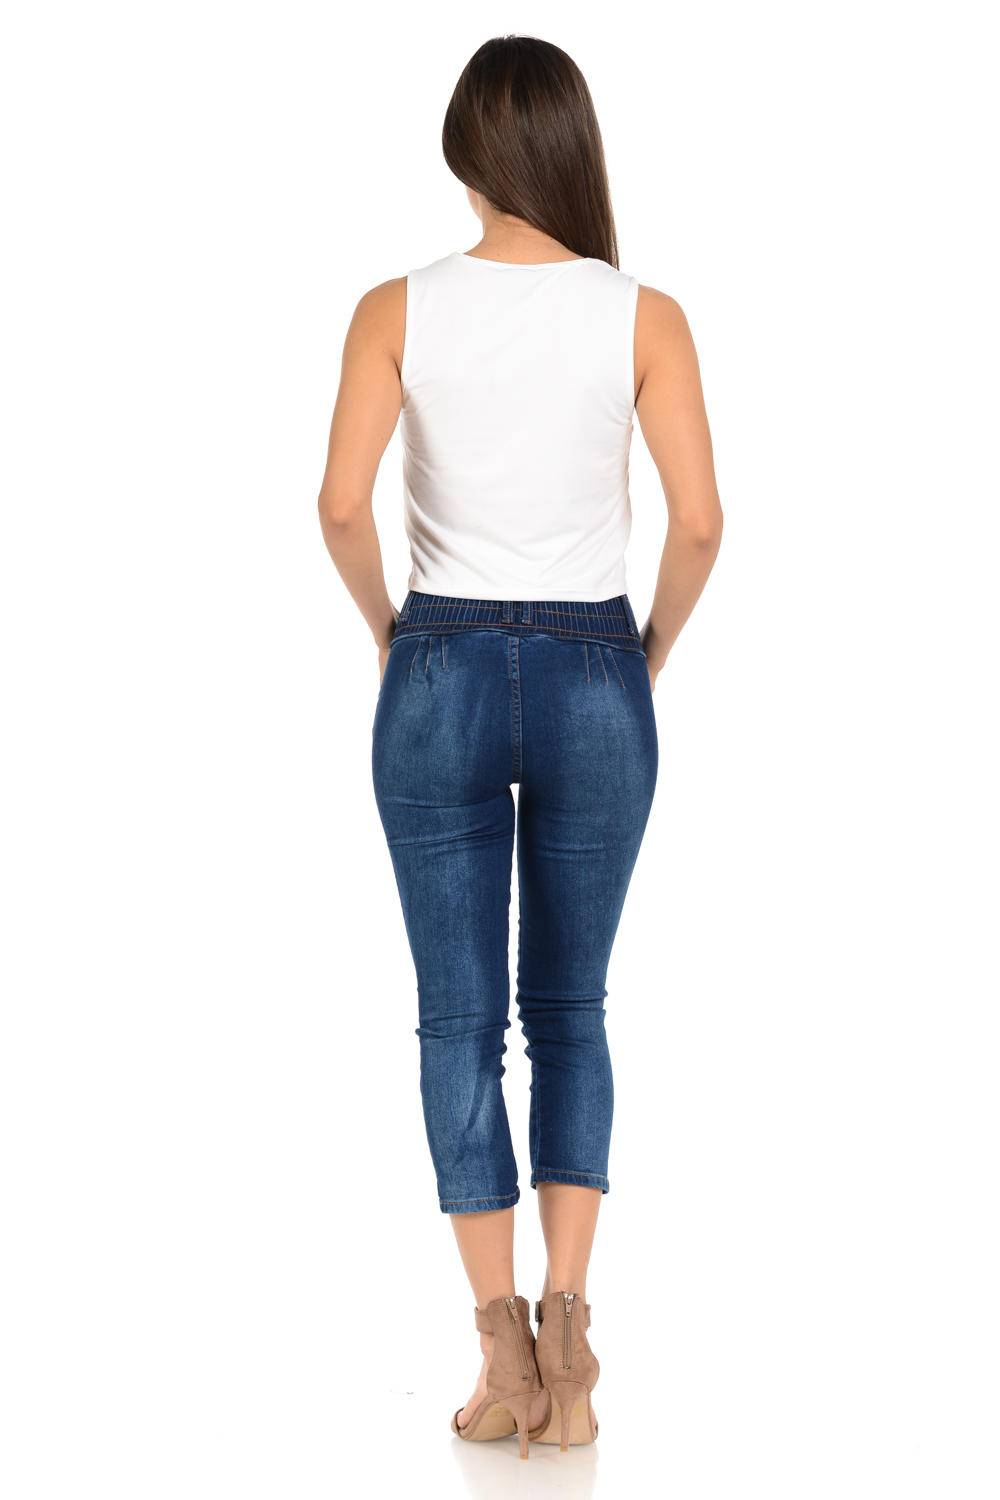 Mitzi Michel Capri Pants